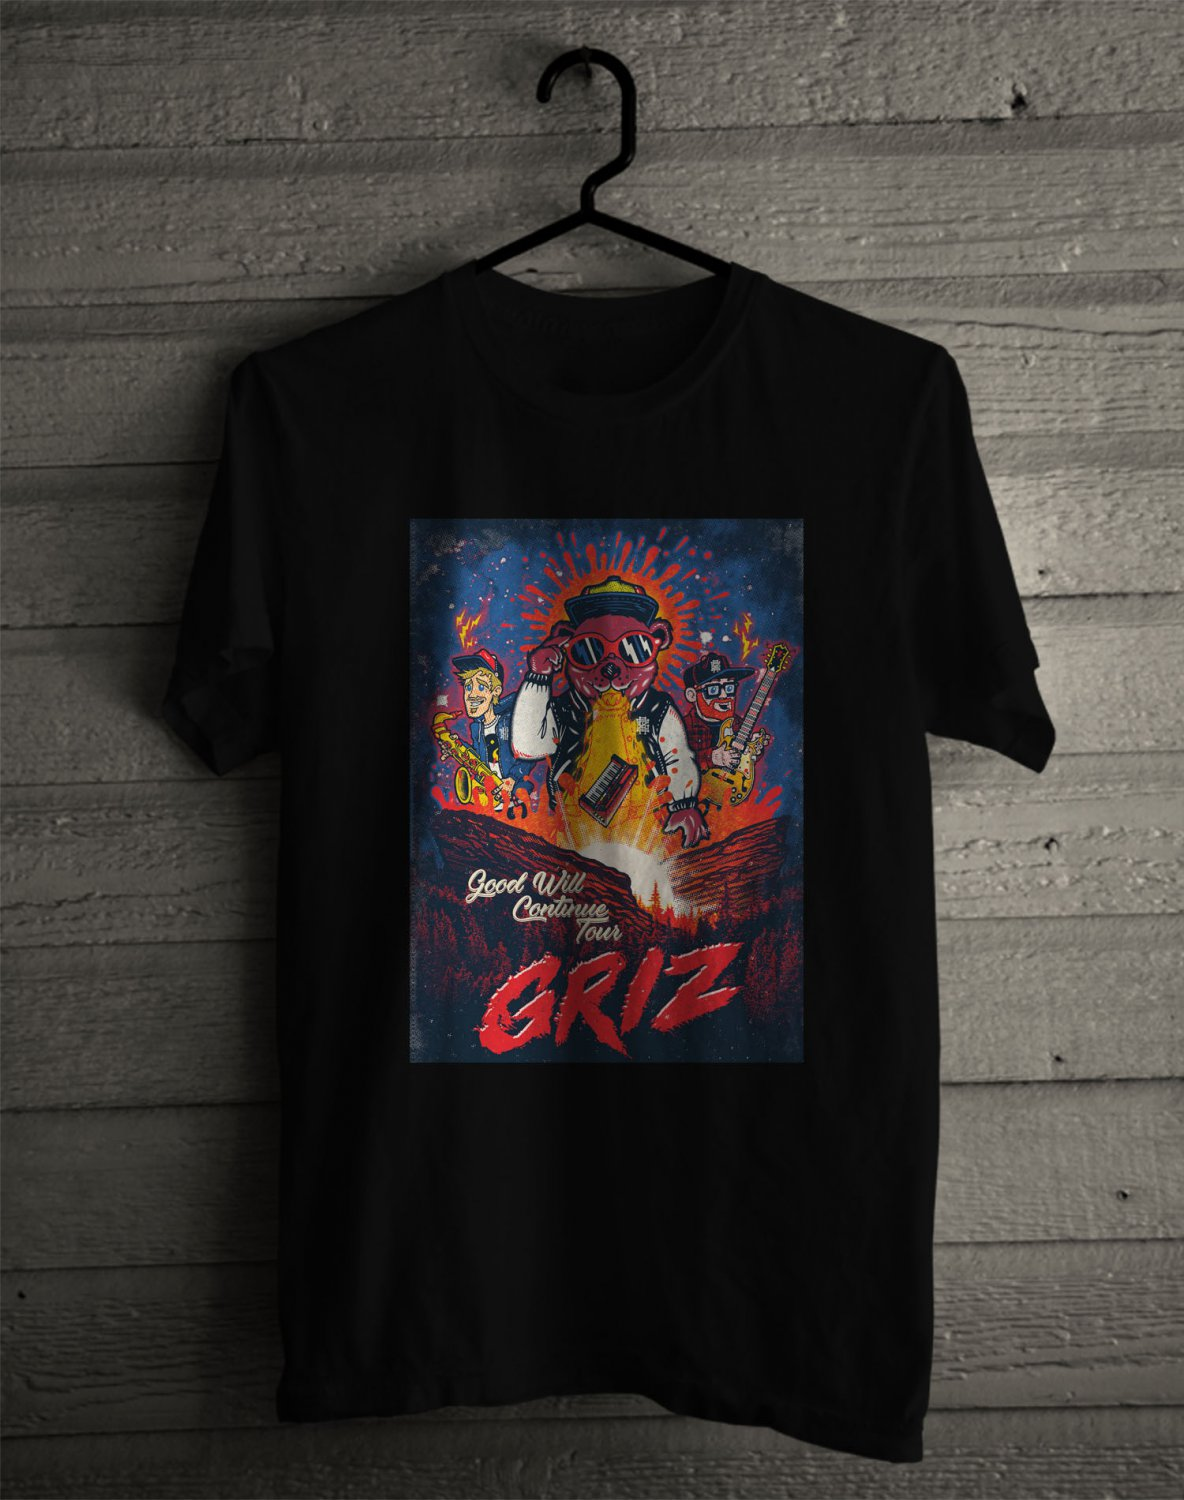 Grizz Good Will Continue Tour 2017 on Red Rock Amphiteater Black Tee's Front Side by Complexart z1